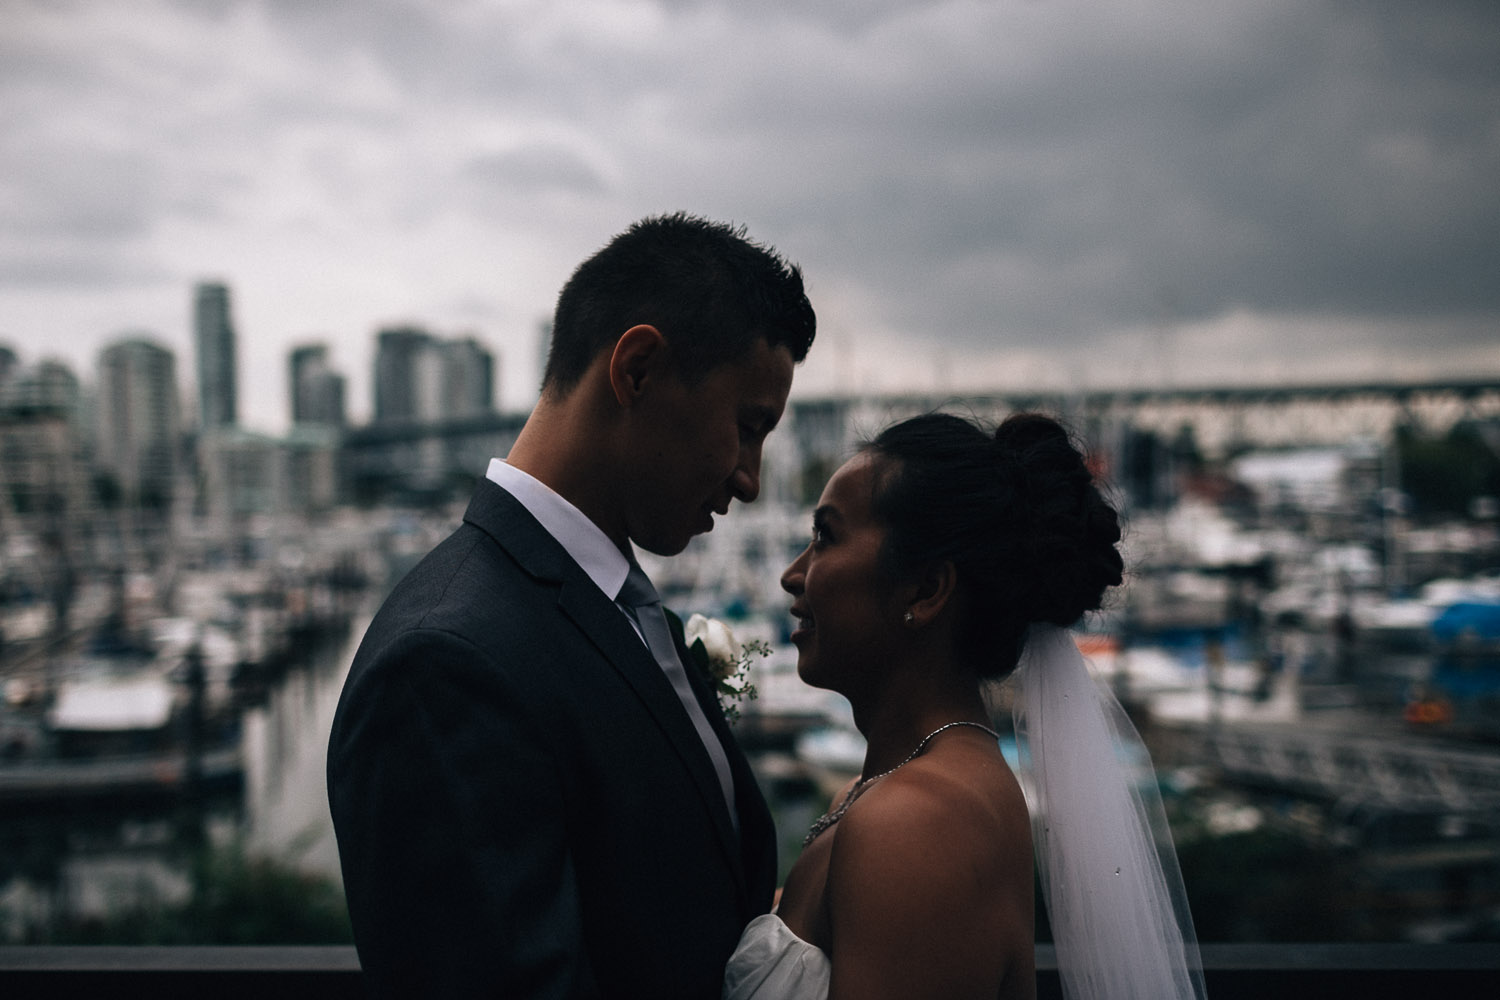 vancouver wedding portrait photography noyo creative